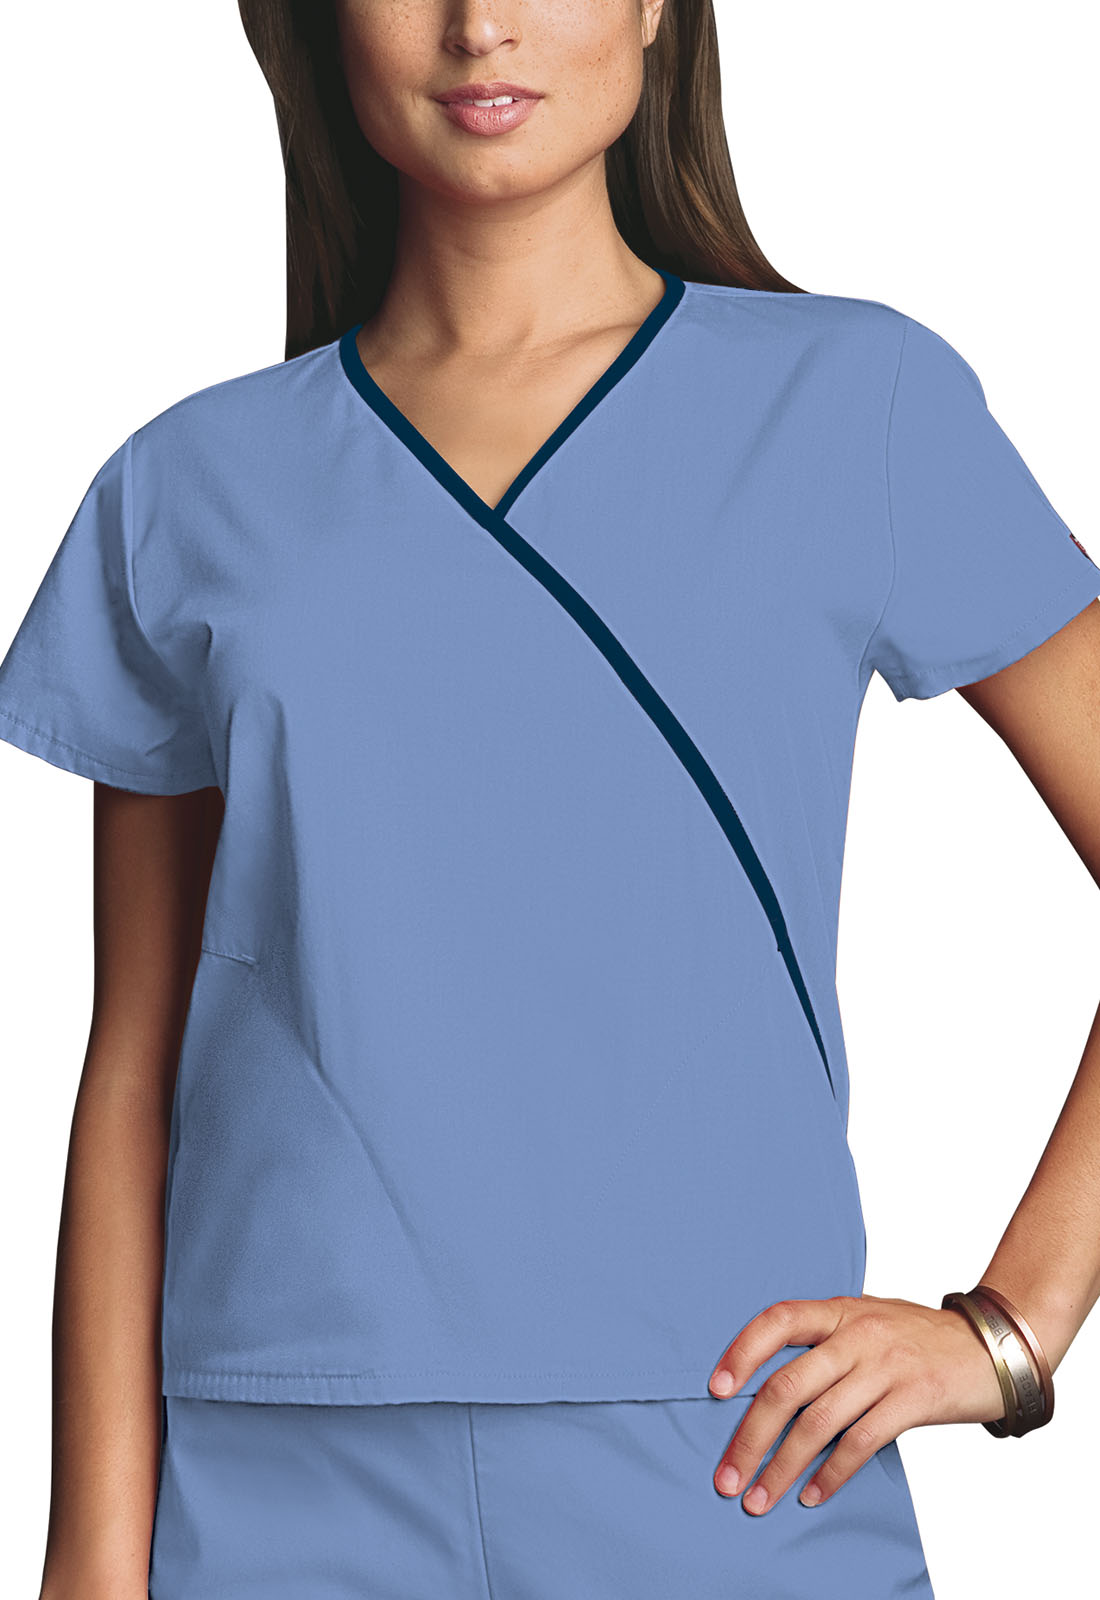 eba5c939ecc WW Originals Mini Mock Wrap Top in Ciel 4800-CIEW from Scrubs Express